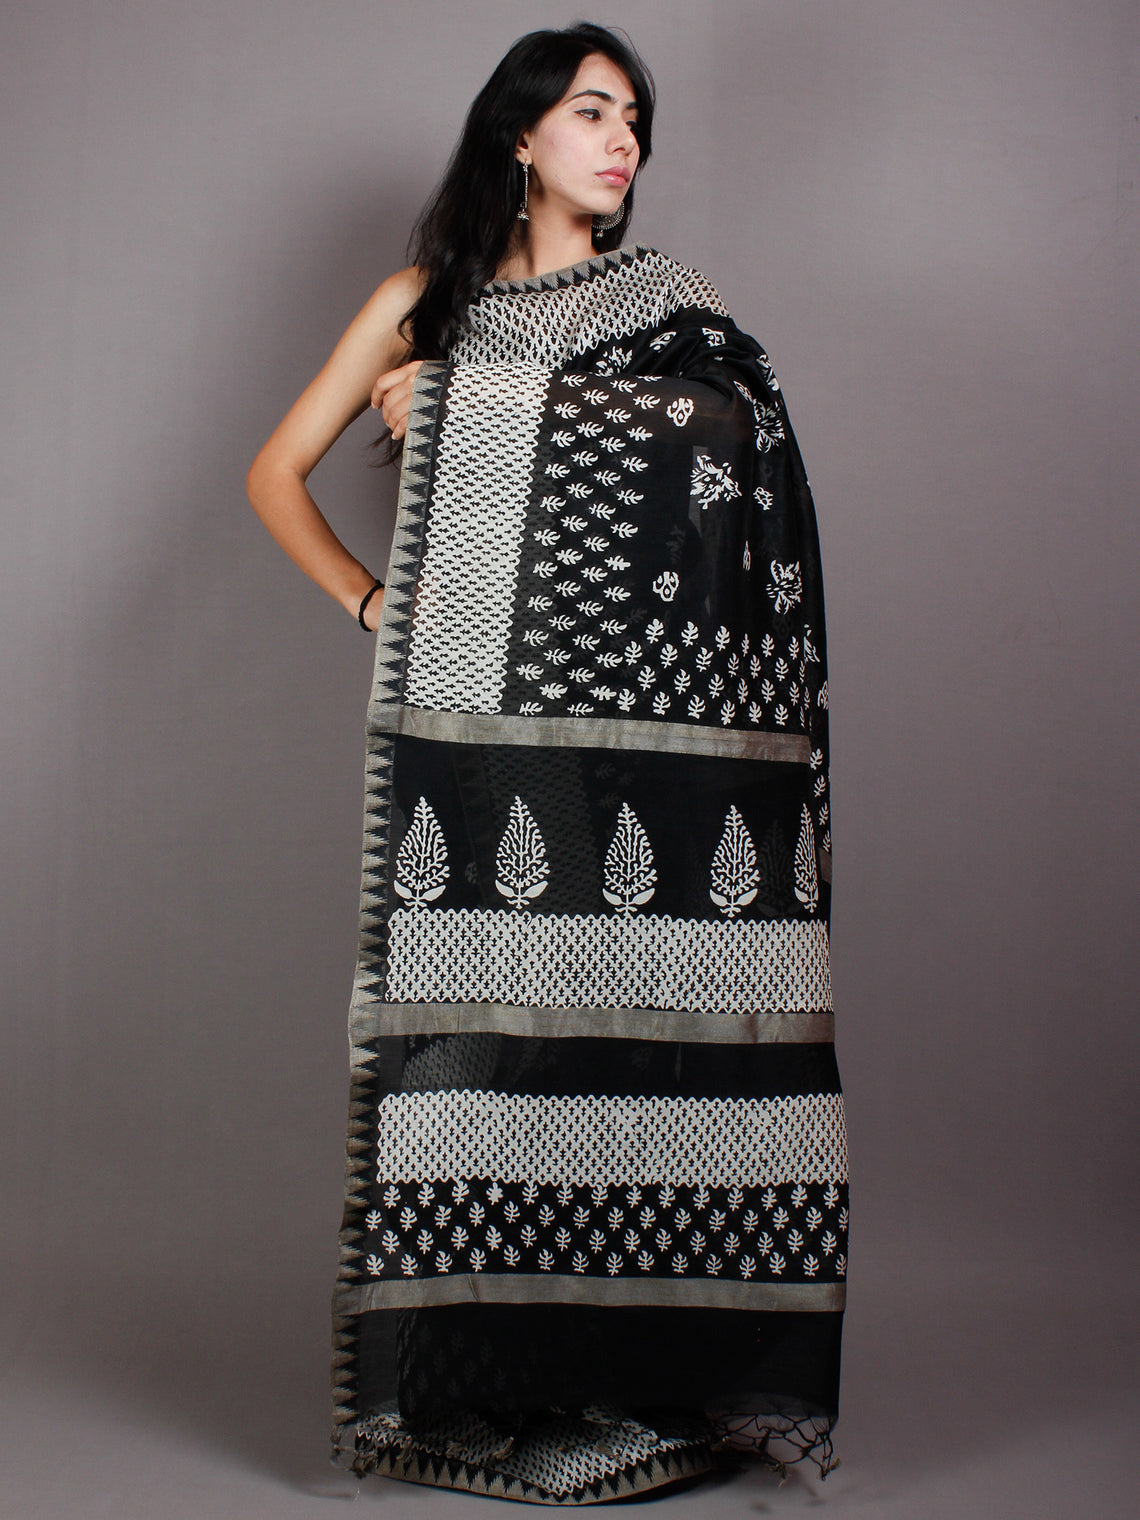 Black White Hand Block Printed in Natural Vegetable Colors Chanderi Saree With Geecha Border - S03170544